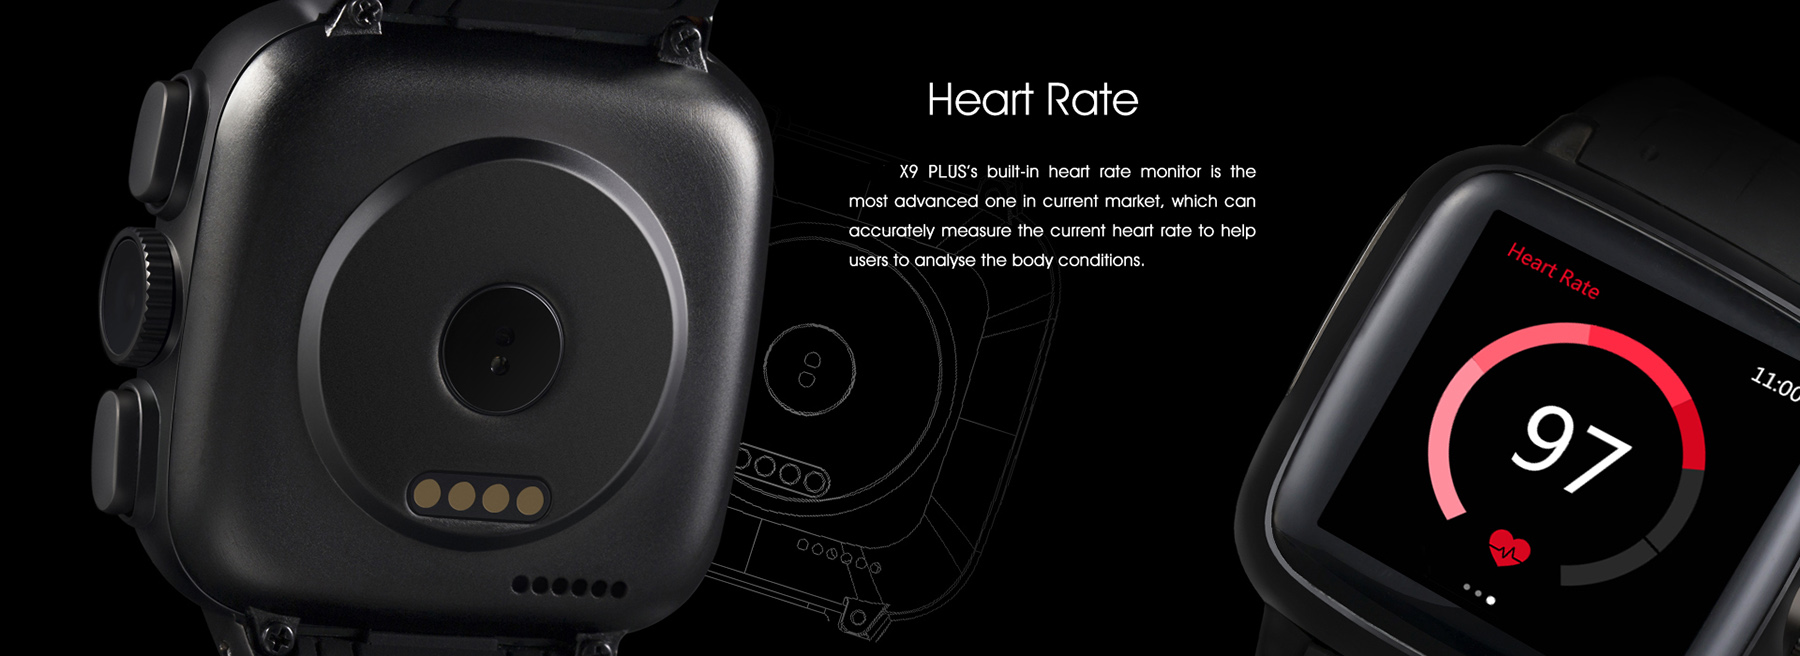 TenFifteen X9 PLUS Android 4.4 1.54 inch 3G Smartwatch Phone MTK6572 Dual Core 1.3GHz 4GB ROM Camera Heart Rate Measurement Bluetooth Pedometer